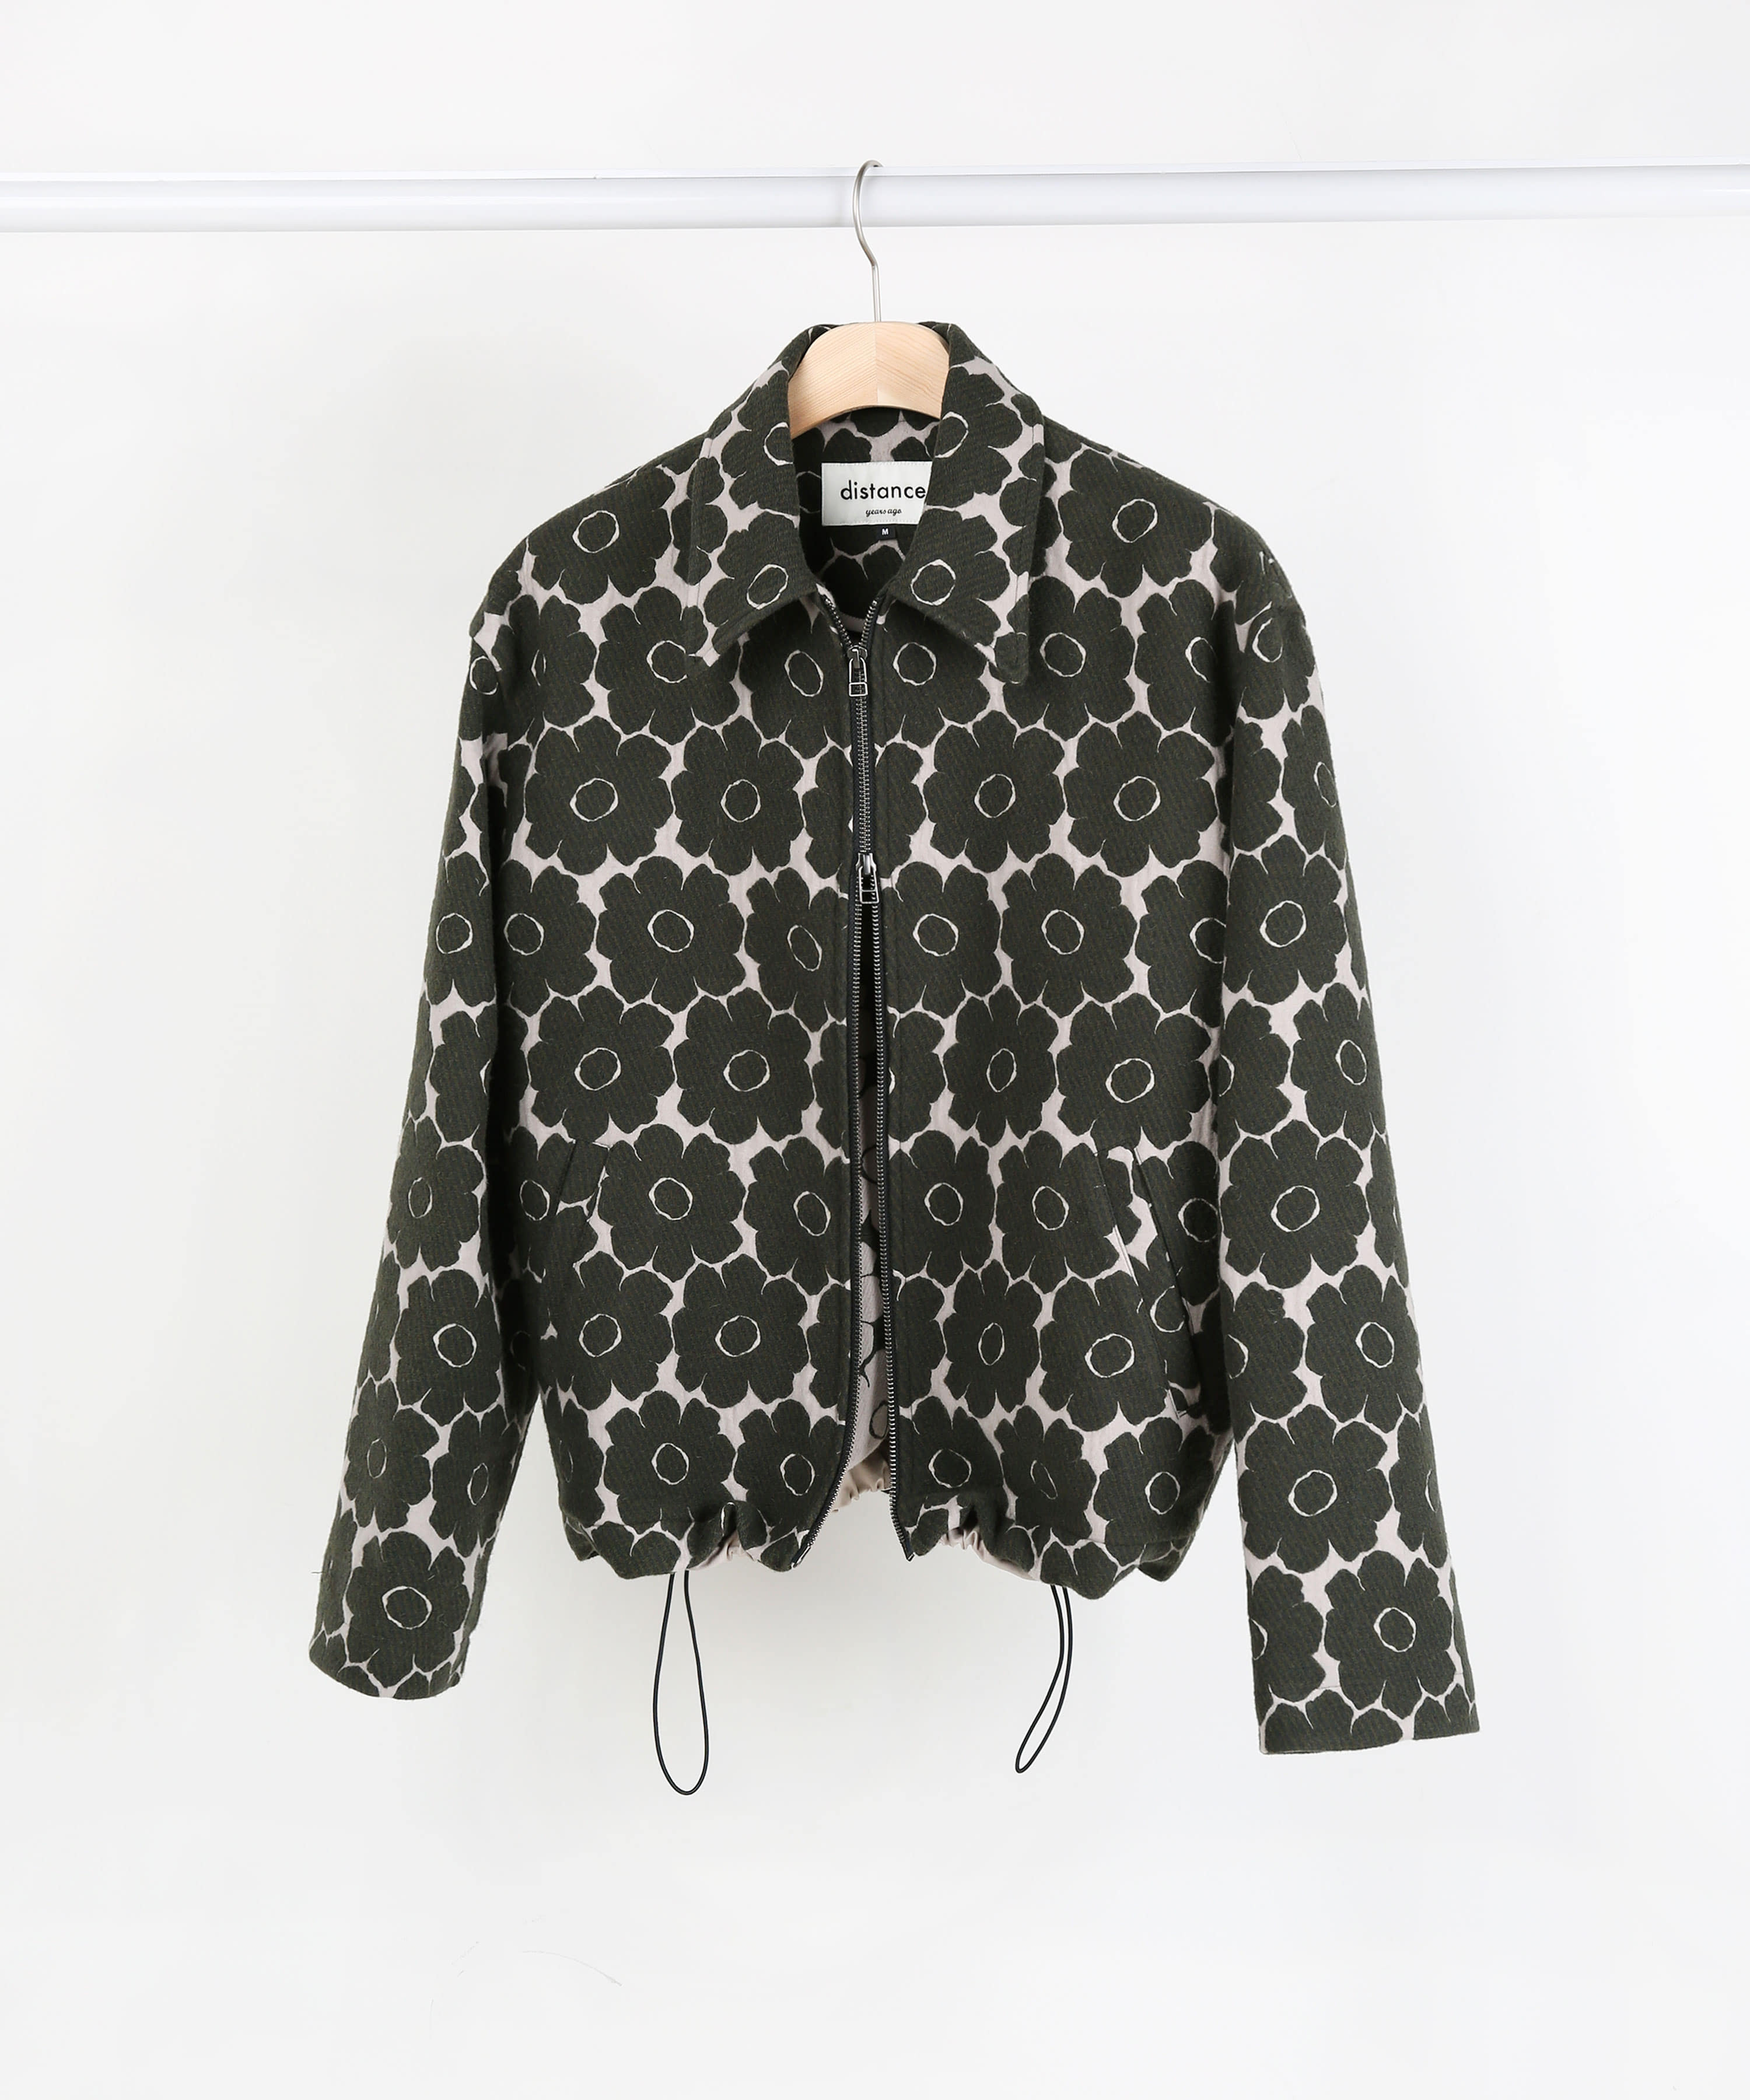 [DISTANCE] OLIVE FLORAL JACQUARD TWO-WAY ZIP UP BLOUSON